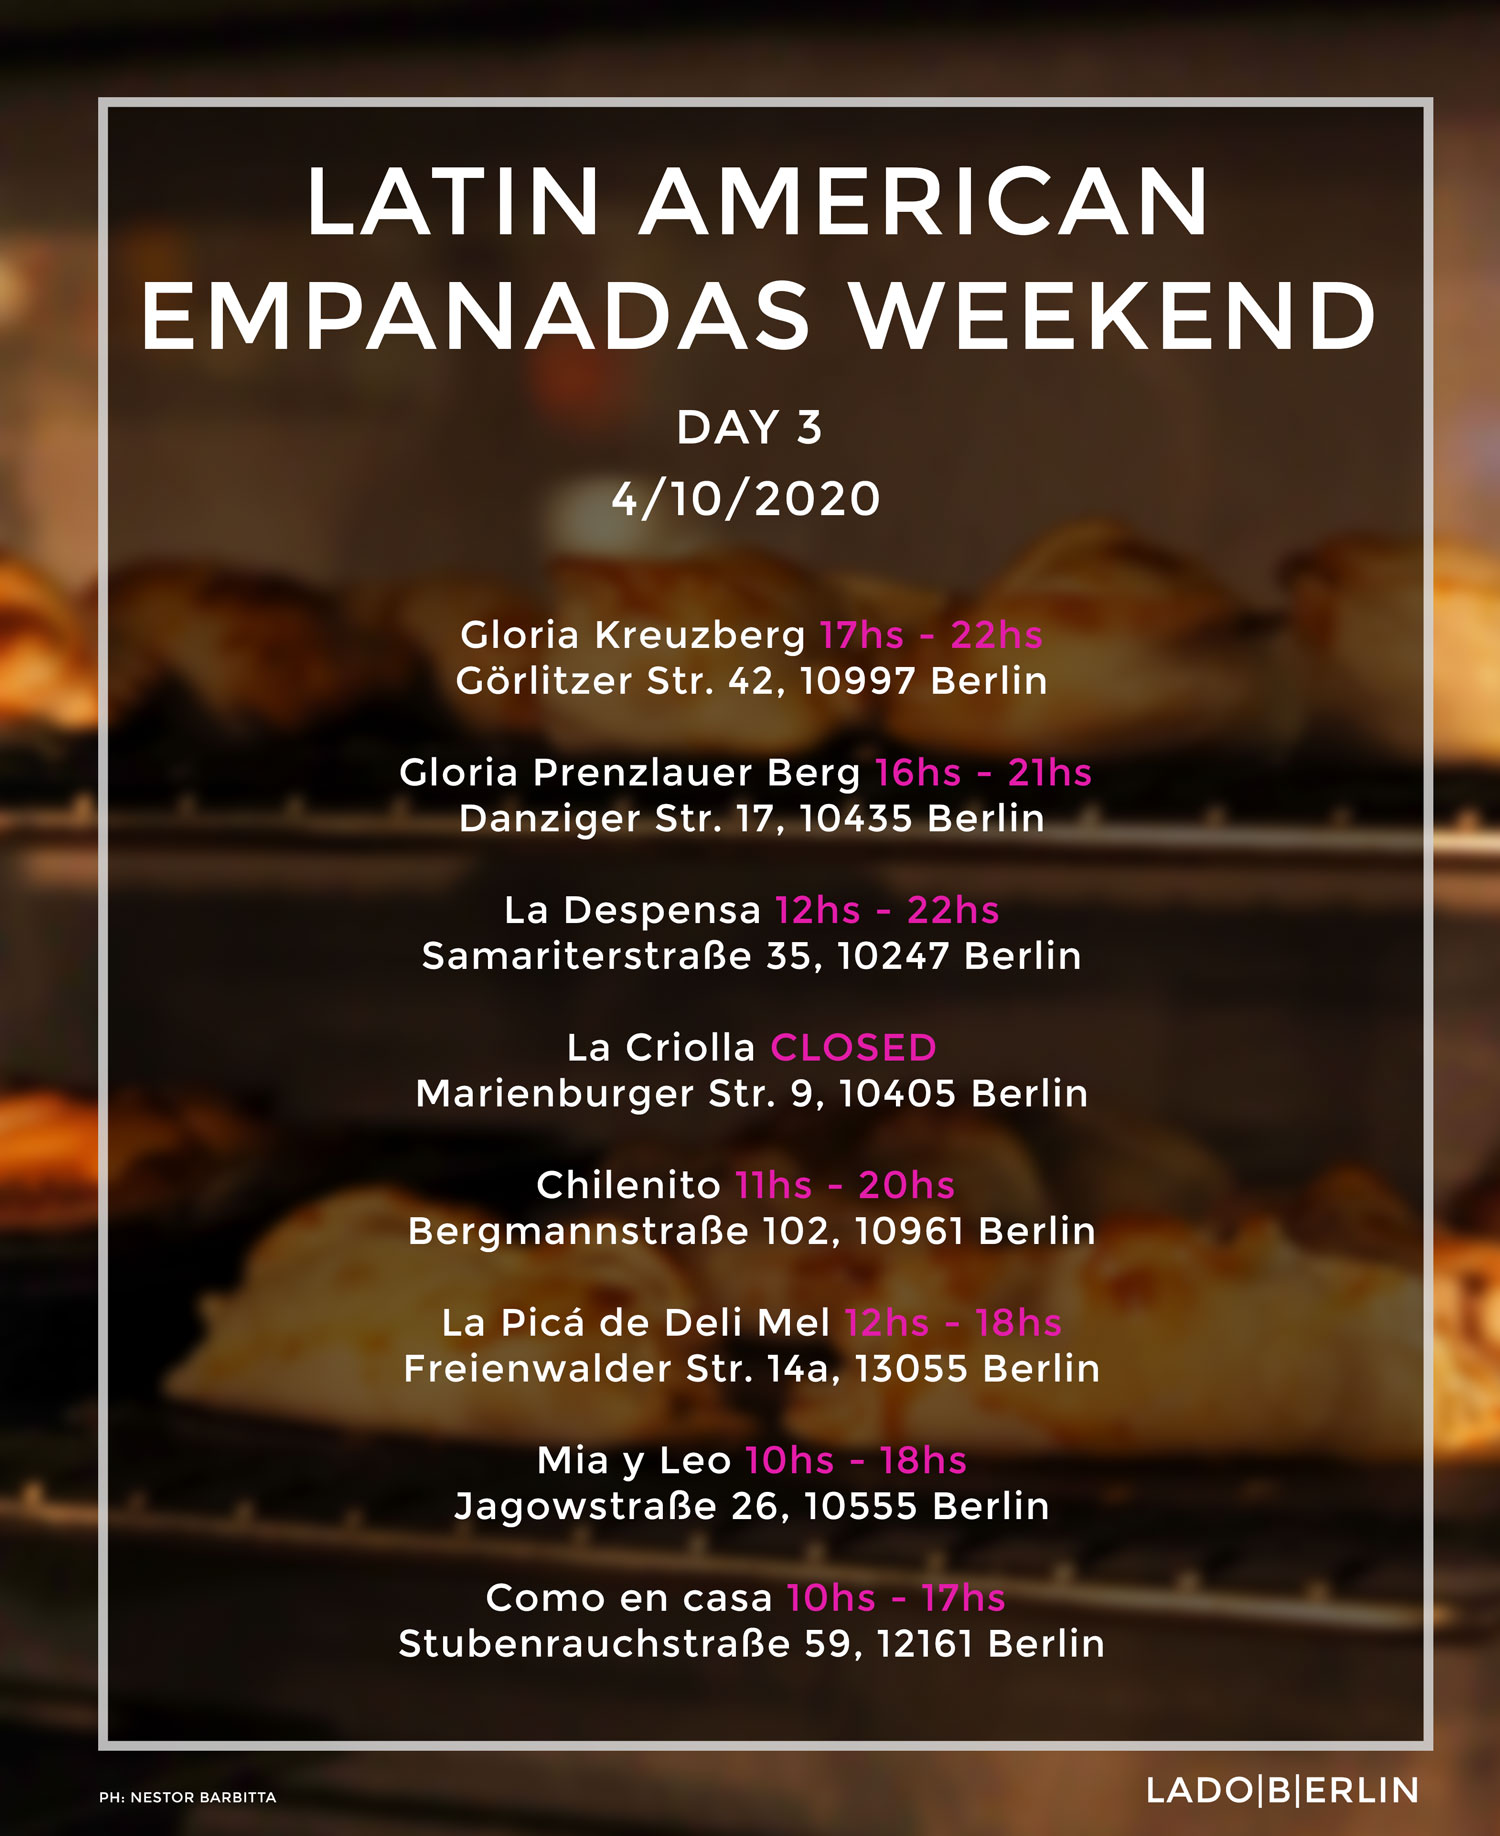 Latin American Empanadas Weekend - Day 3 - time table.